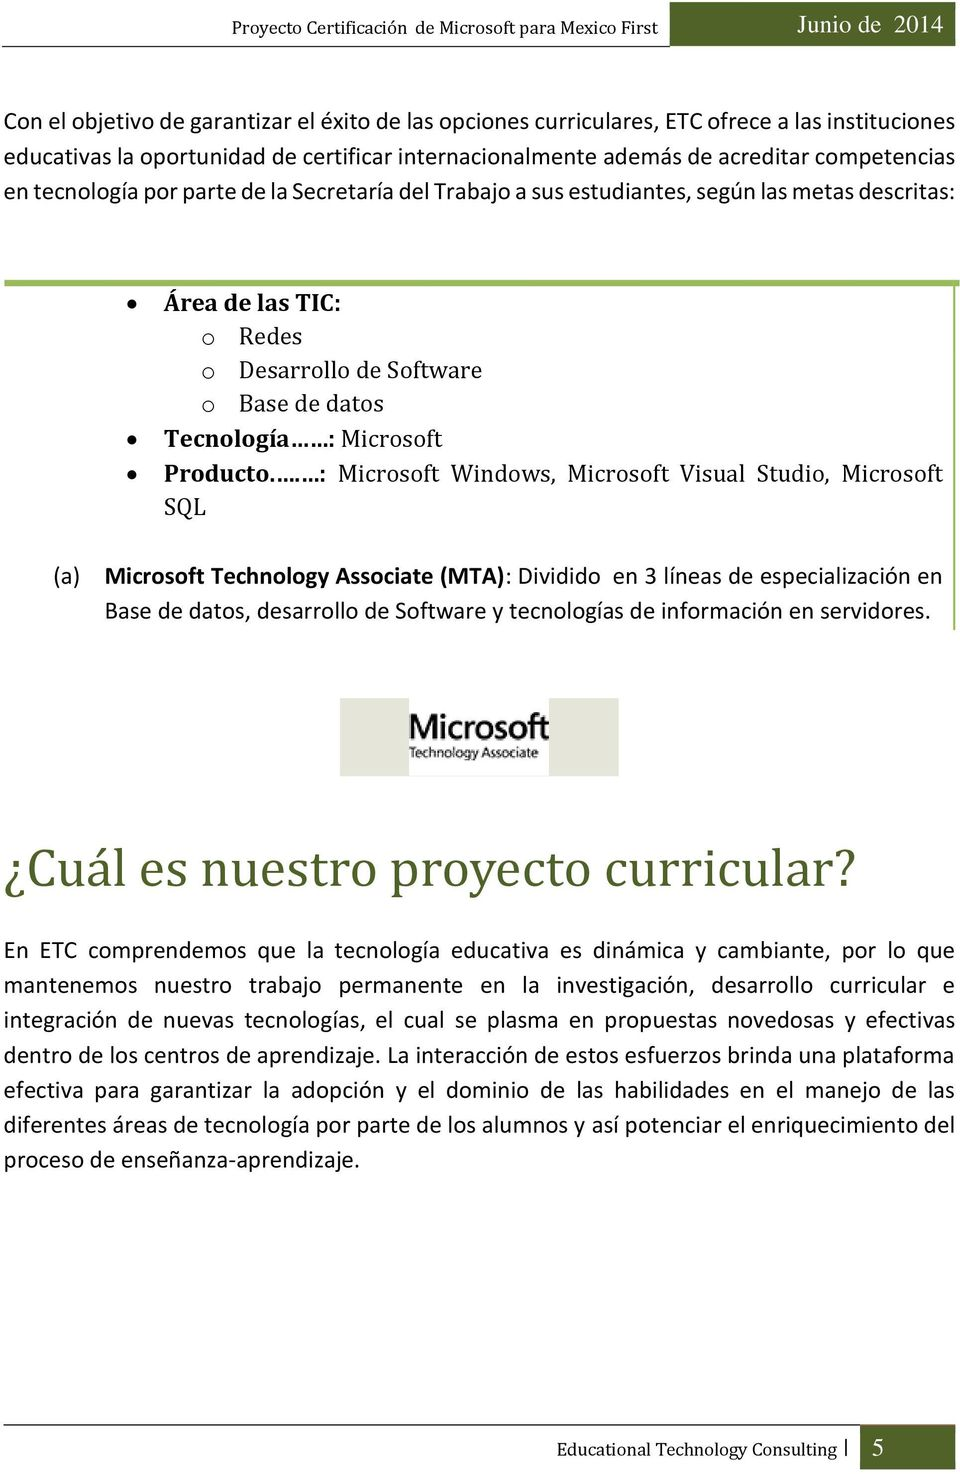 . : Microsoft Windows, Microsoft Visual Studio, Microsoft SQL (a) Microsoft Technology Associate (MTA): Dividido en 3 líneas de especialización en Base de datos, desarrollo de Software y tecnologías